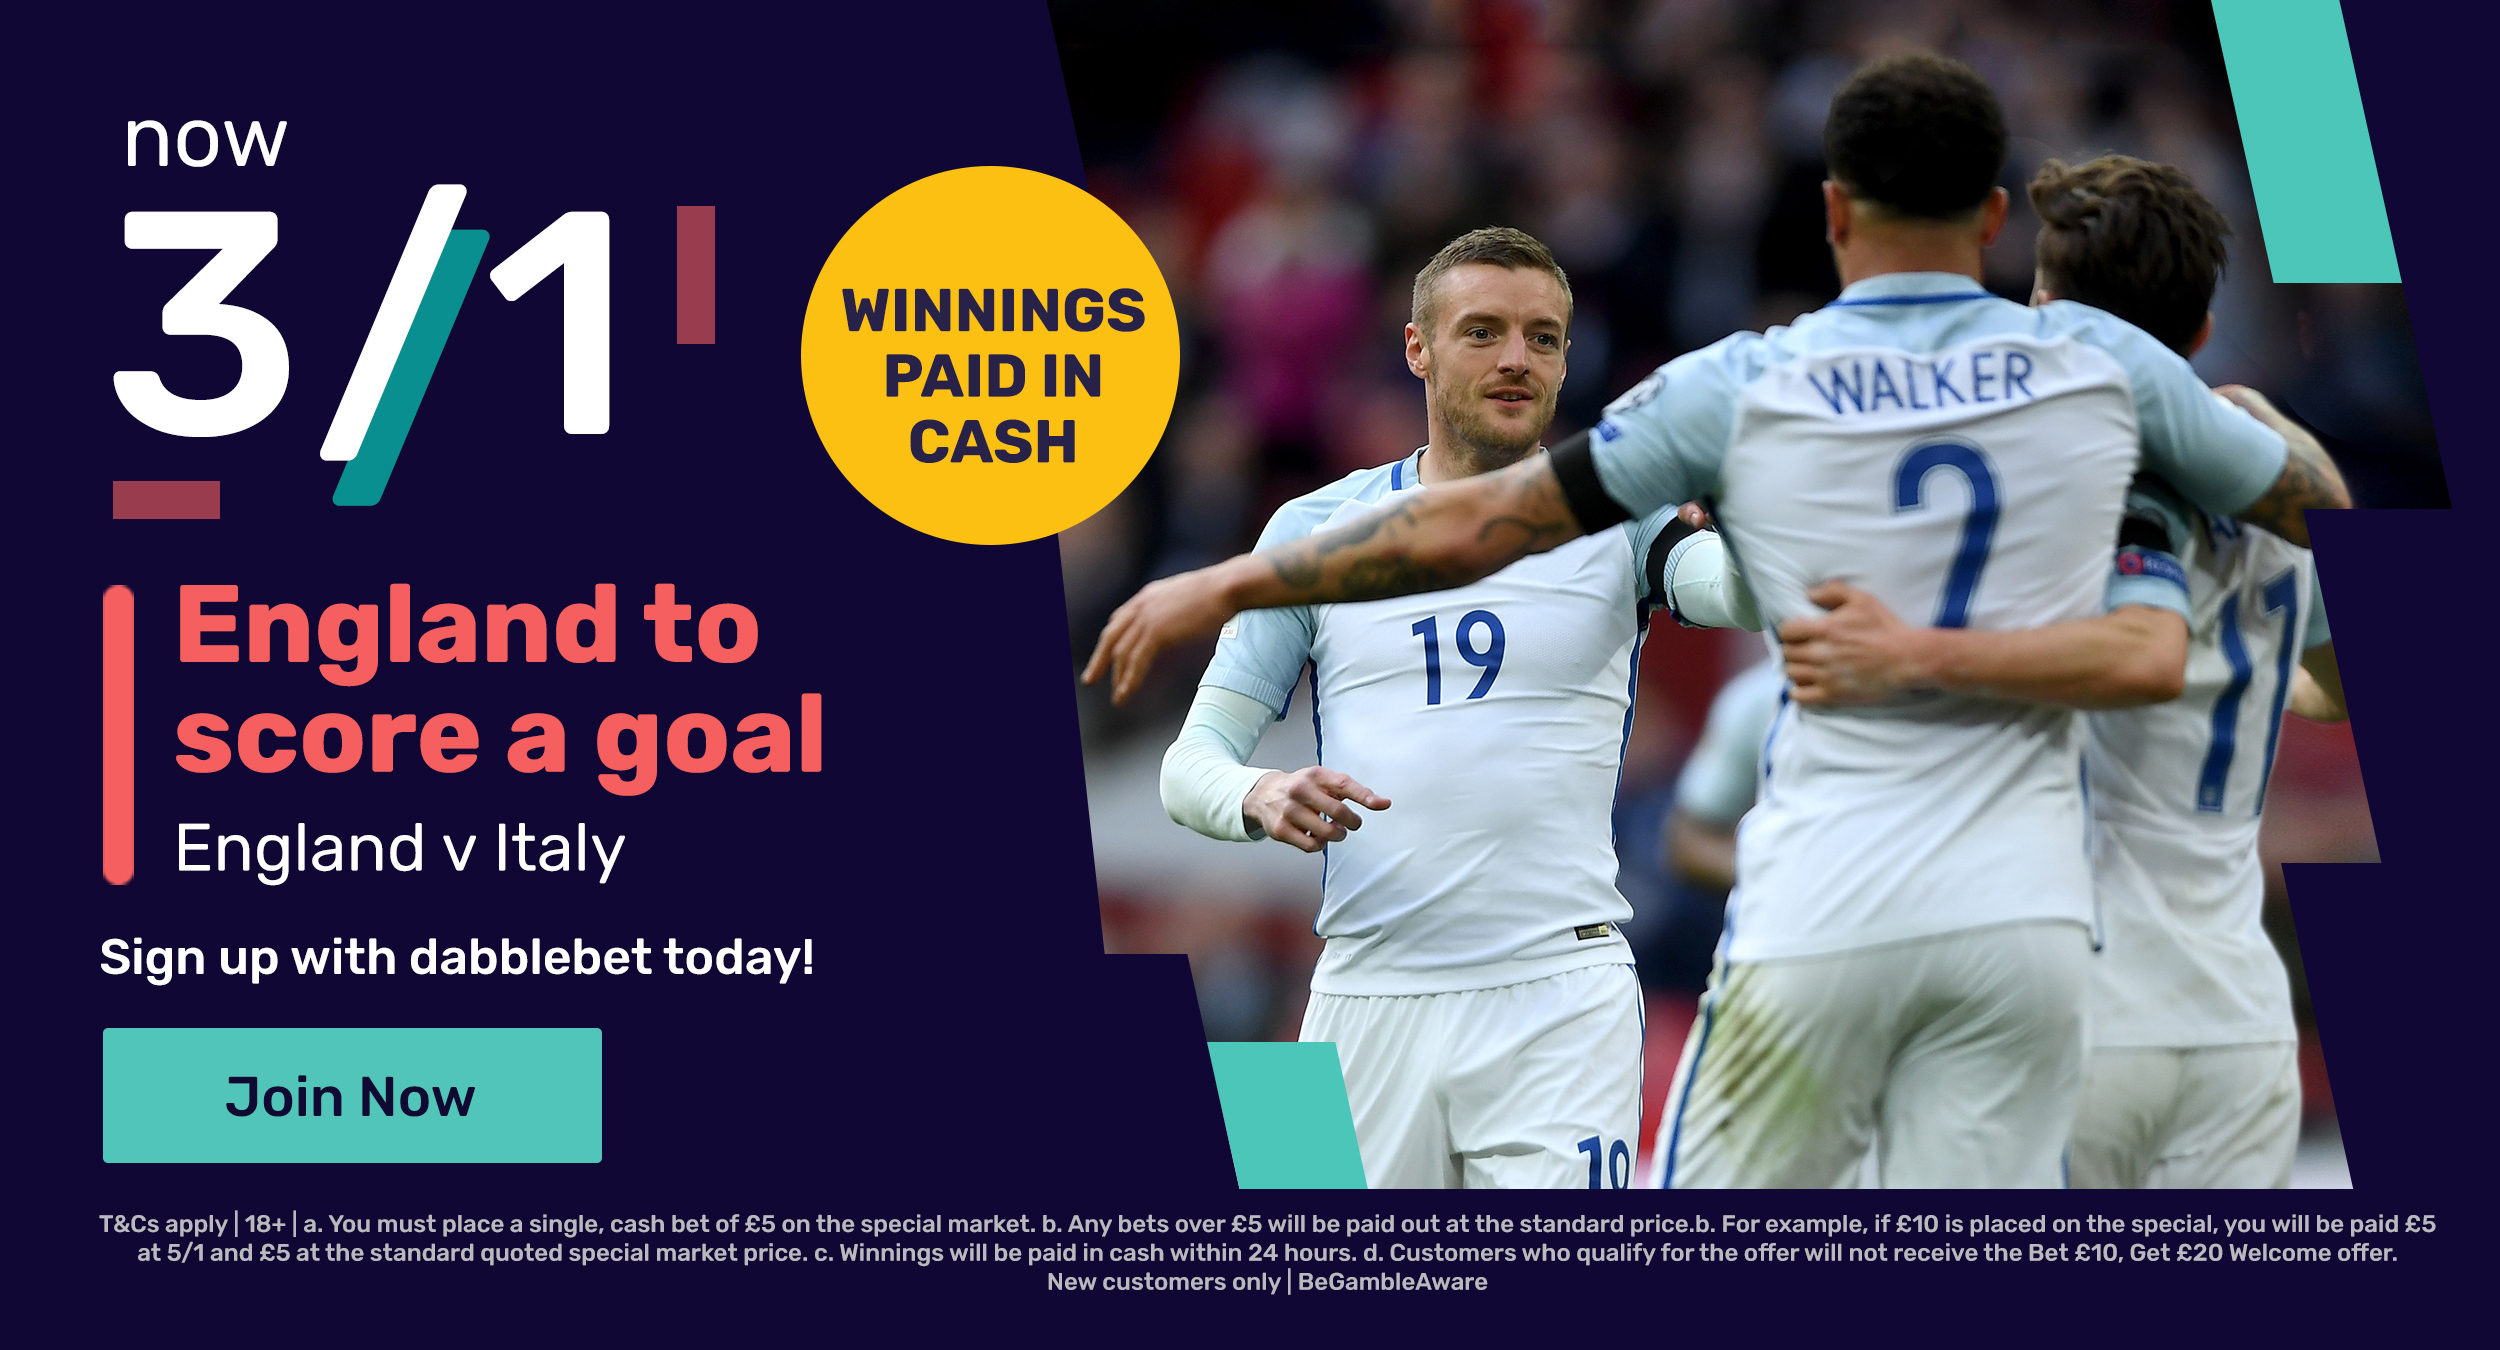 England Italy dabblebet new customer offer graphic